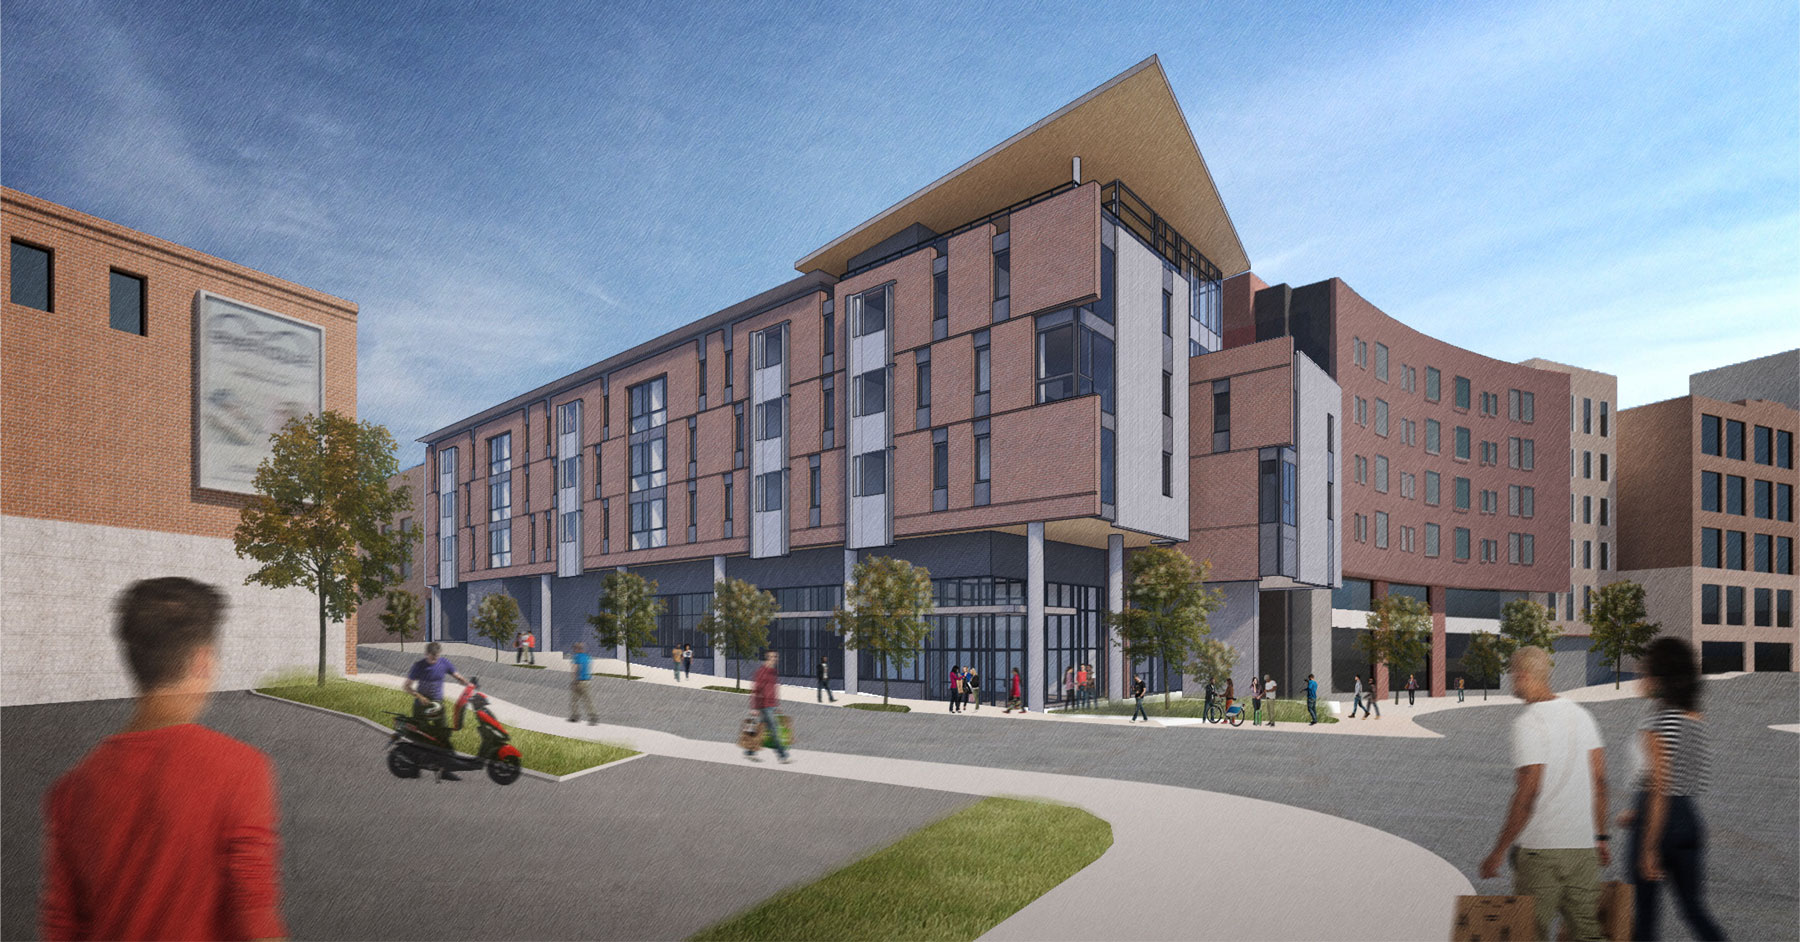 Flats on Forward and the adjacent Krause Commons in Squirrel Hill provide ground floor retail, affordable housing units, open space, and office space.